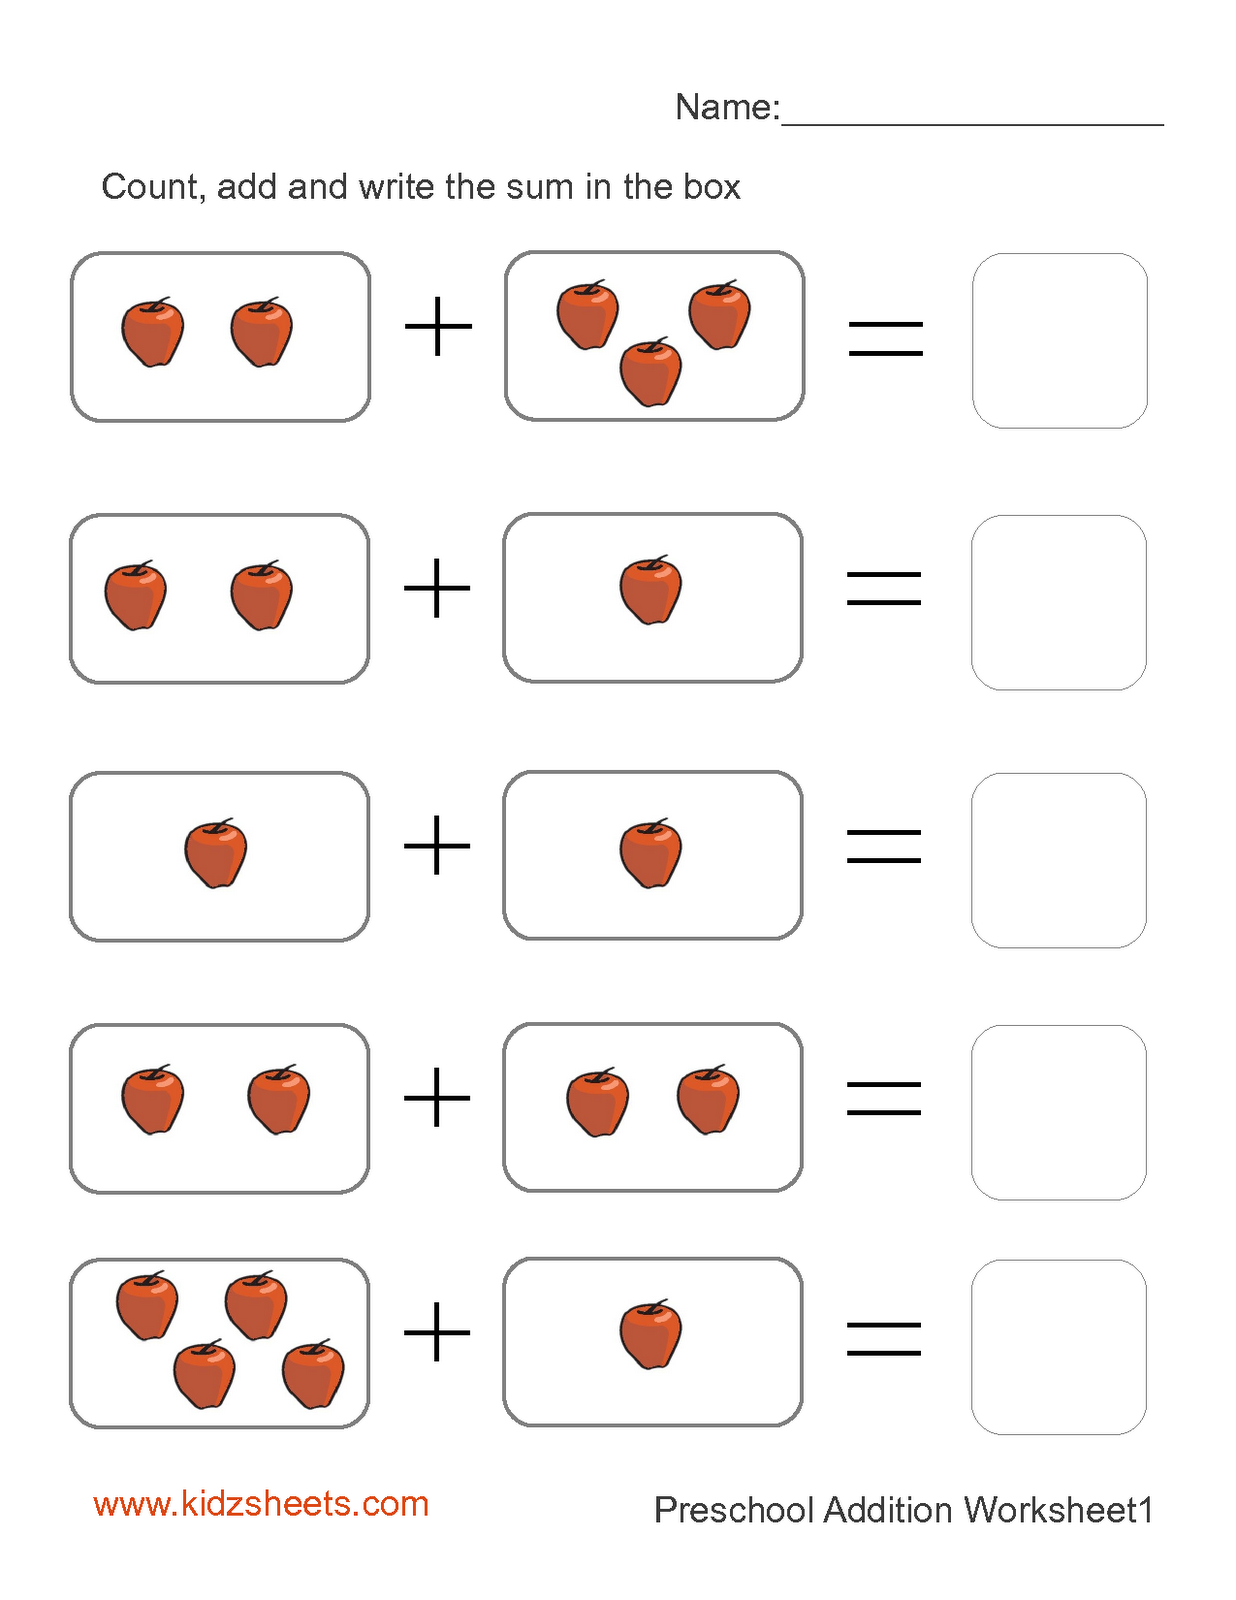 Preschool Addition Sheet1